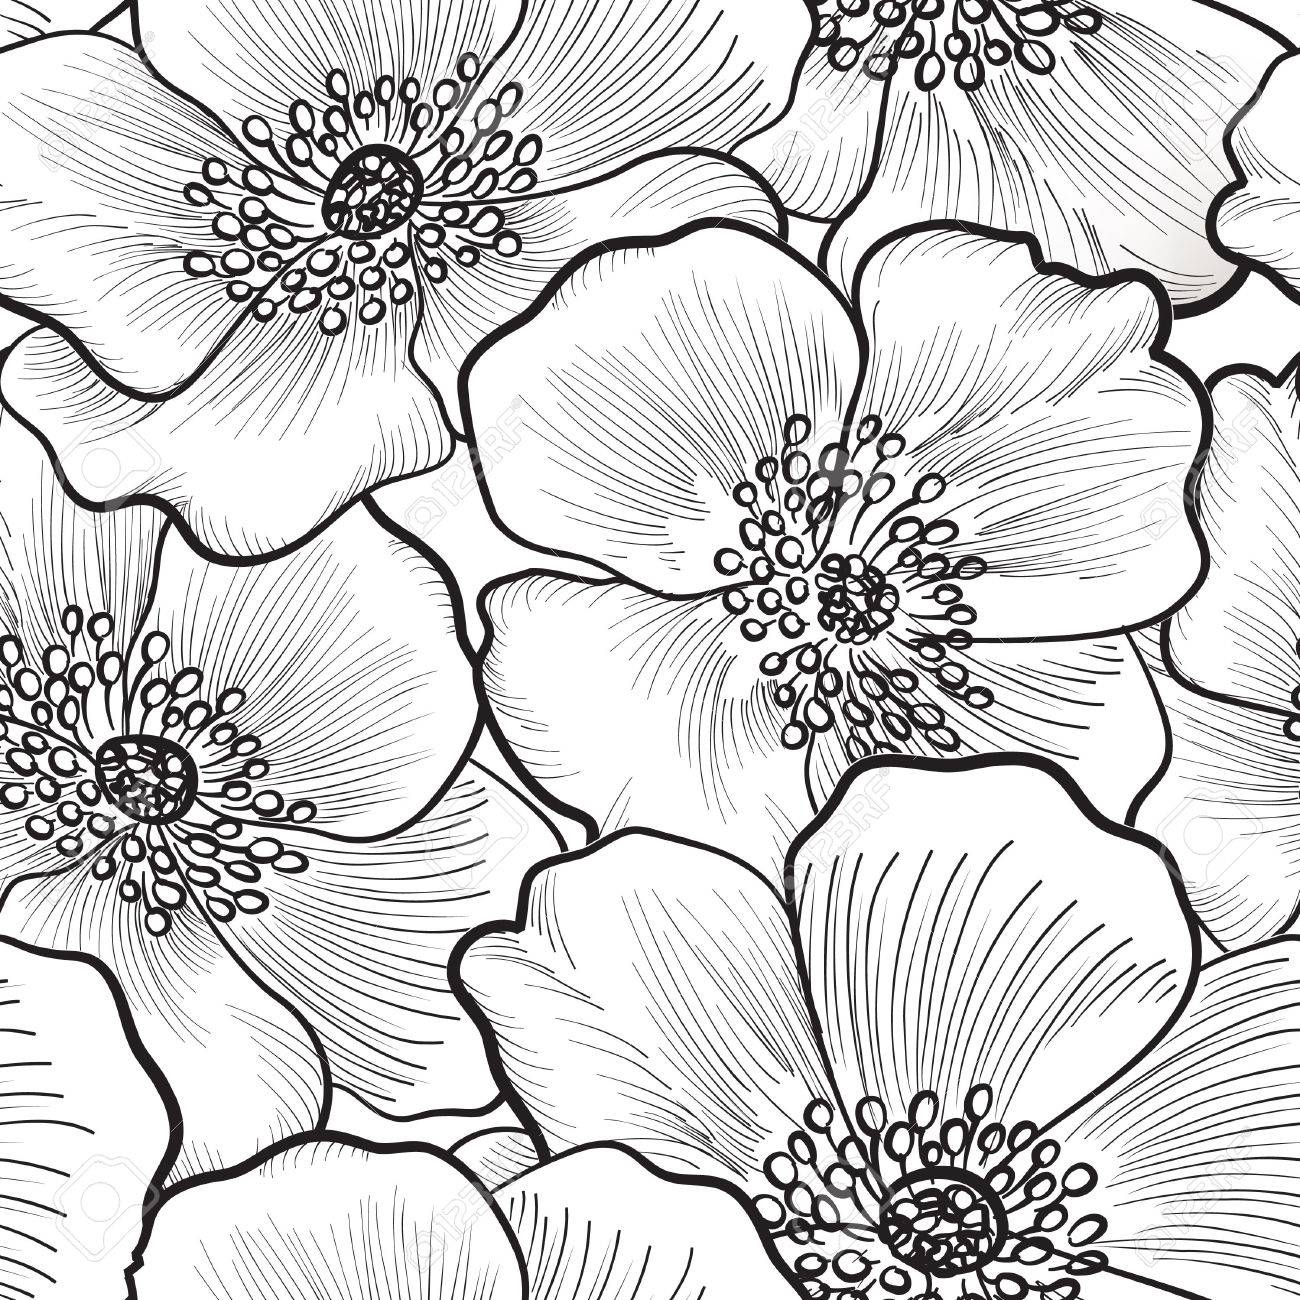 Floral seamless pattern flower silhouette black and white floral seamless pattern flower silhouette black and white background floral decorative seamless texture with mightylinksfo